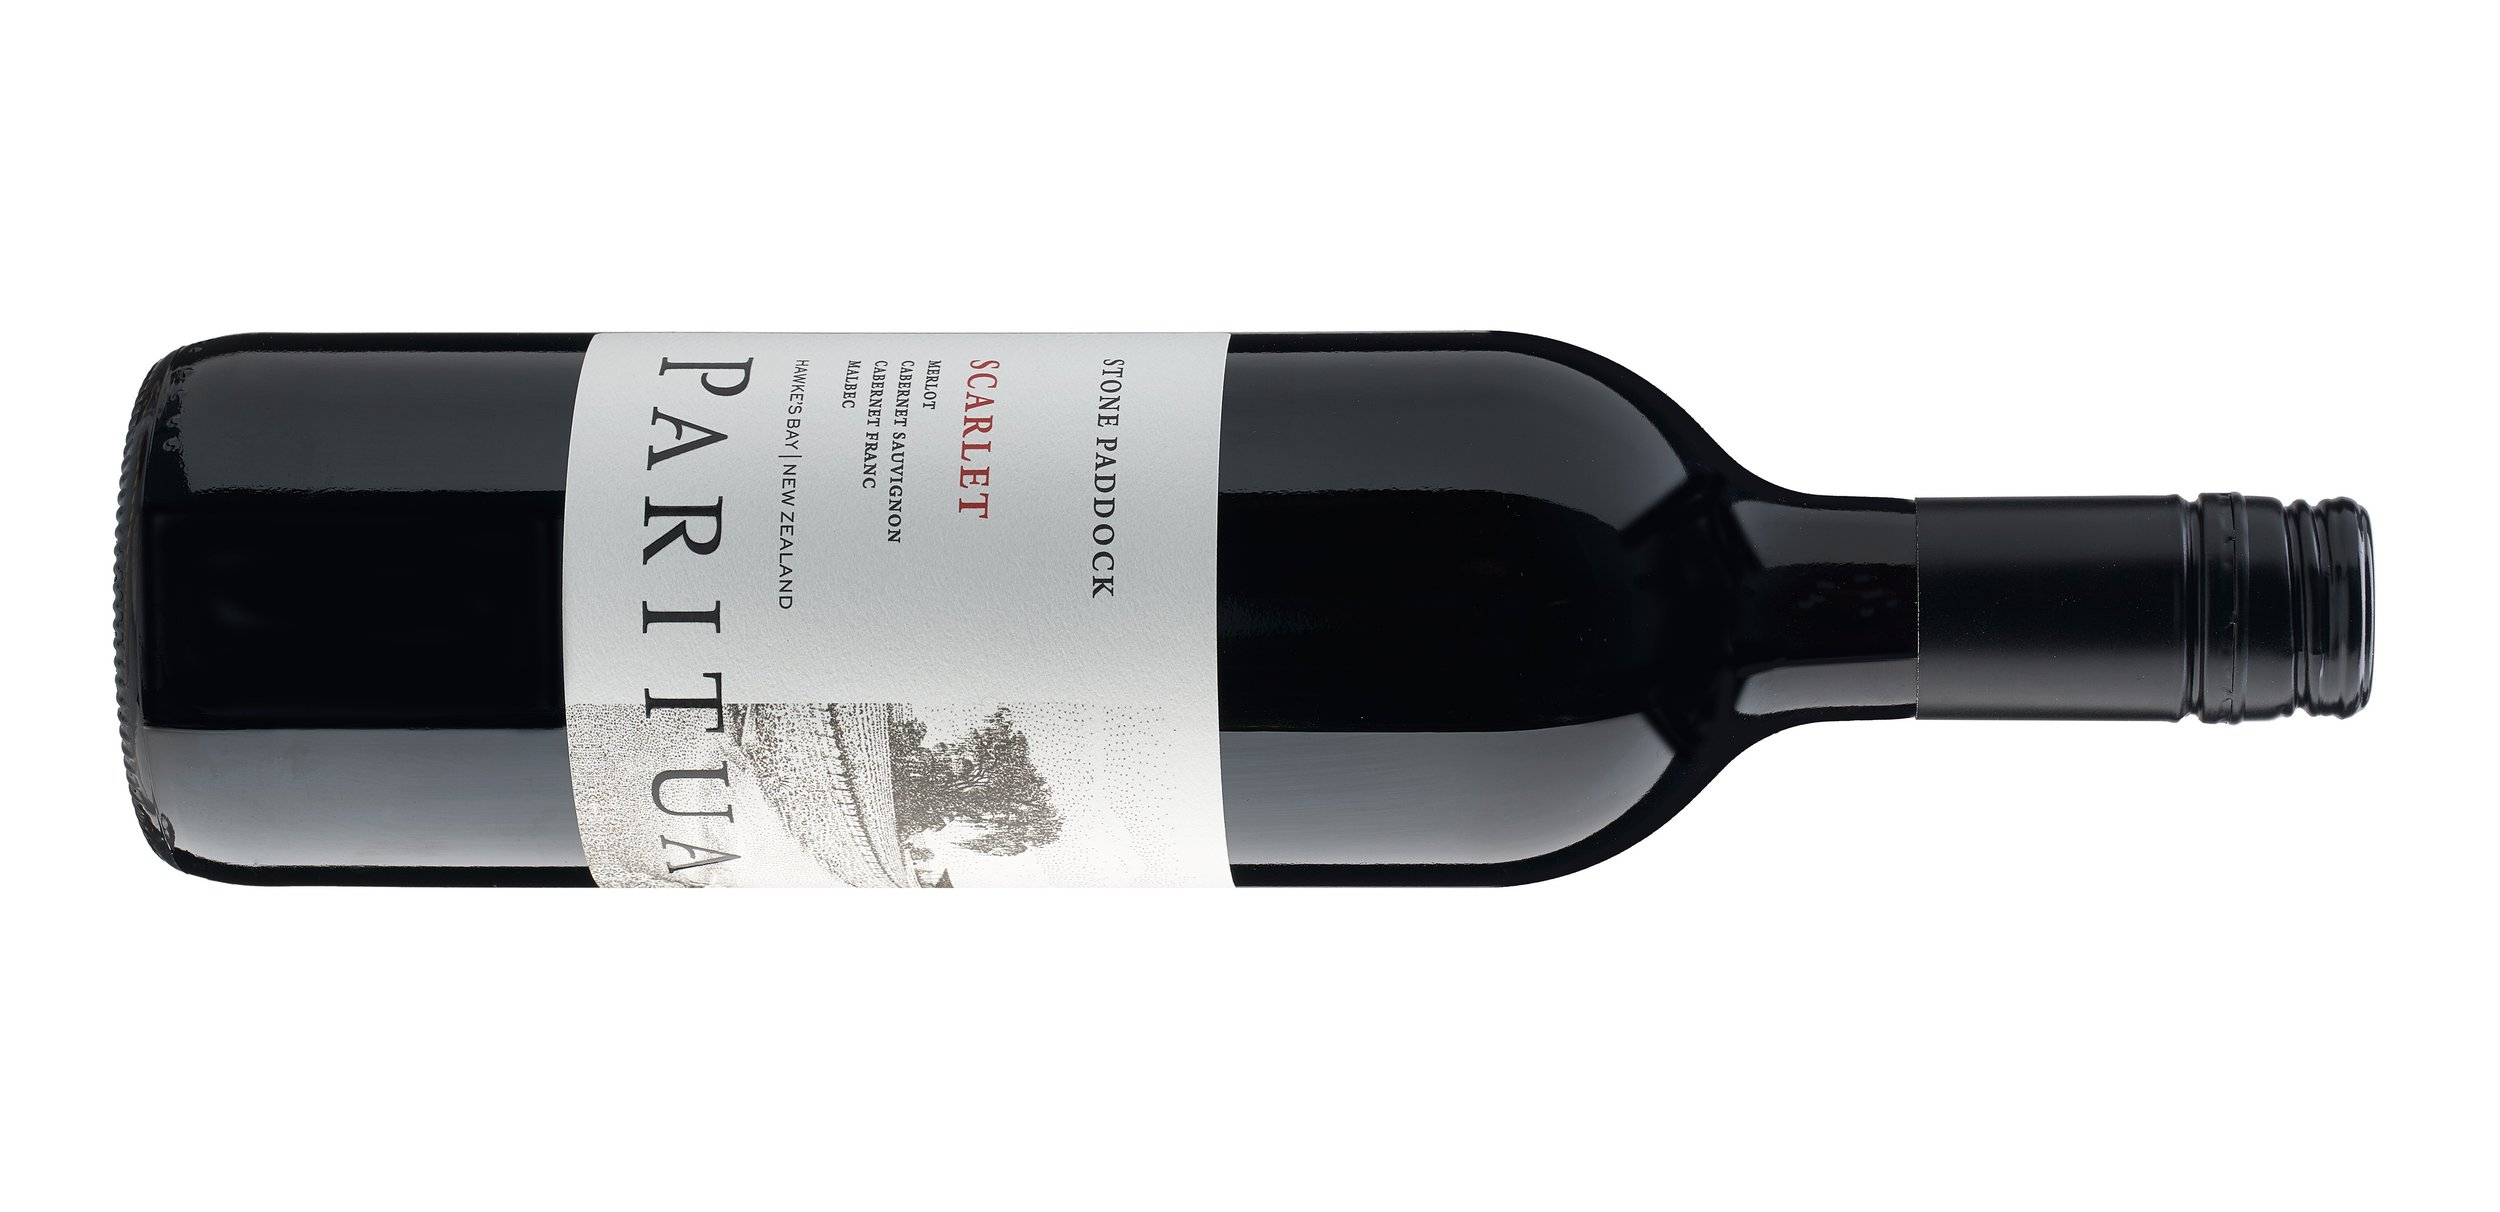 Paritua Stone Paddock - SCARLET - A blend of Merlot, Cabernet Sauvignon, Cabrenet Franc and Malbec.